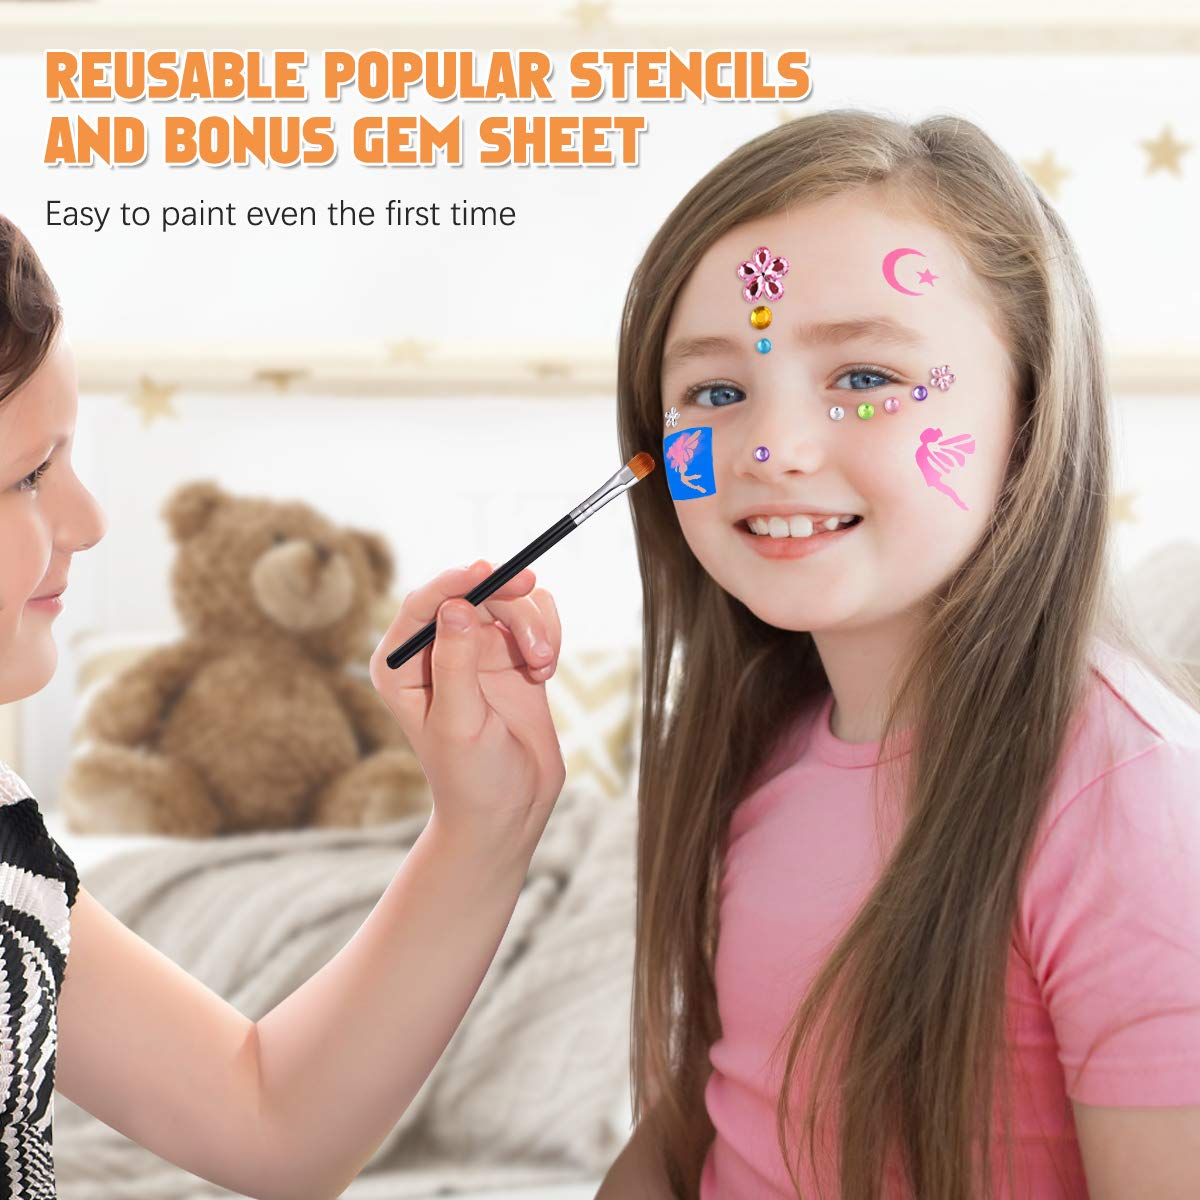 Face Paint Makeup Kit Face Painting Kits Face Paint Set for Kids Adults 15 Colors Water Based Paint, 4 Brushes, 6 Stencils